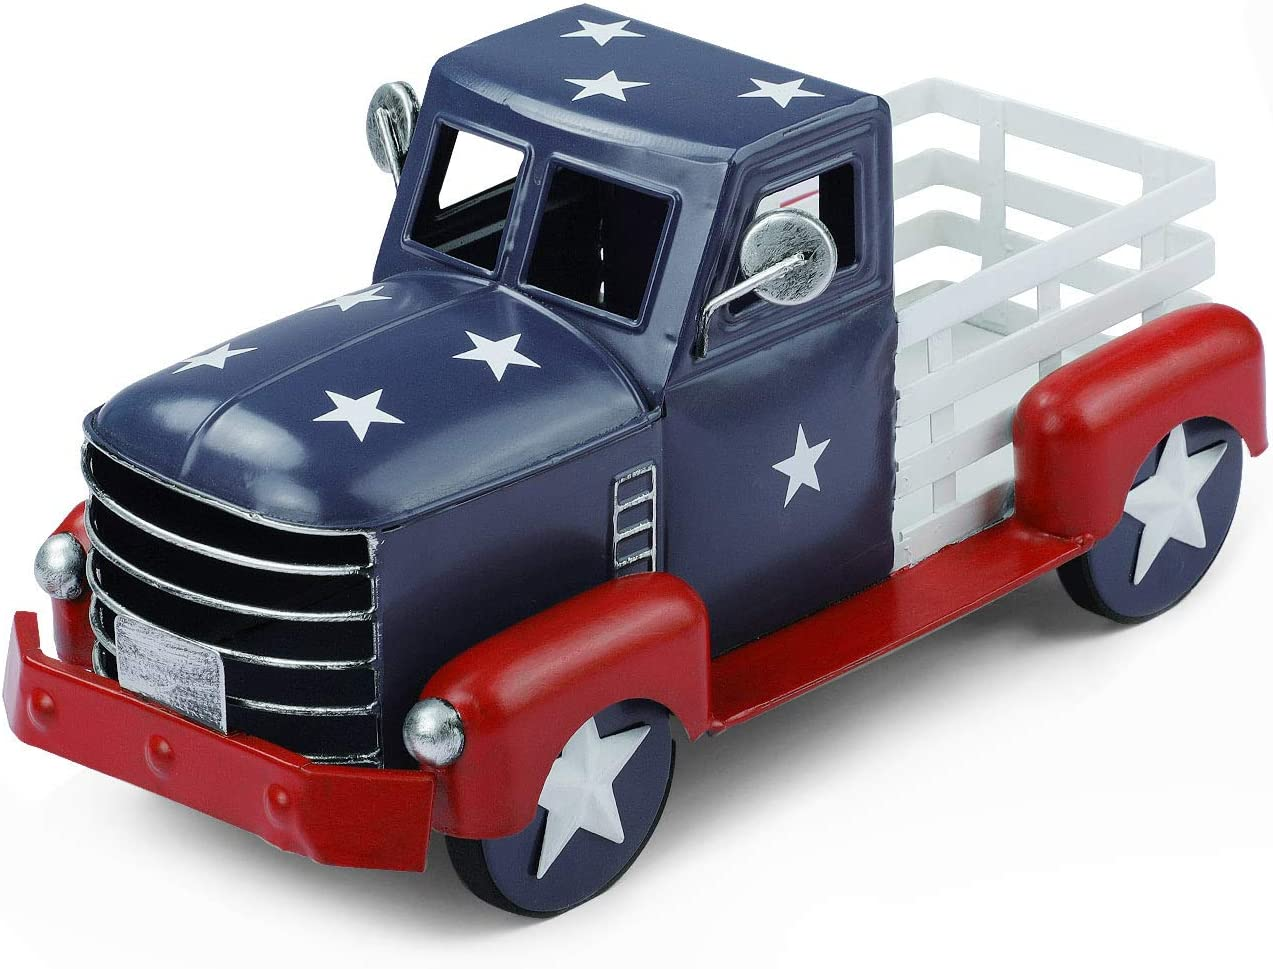 Patriotic Truck Decor, Vintage Fourth of July Metal Truck Planter, Farmhouse Pick-up Truck Spring Decorations & Americana Decorative Tabletop Storage (Small Size)